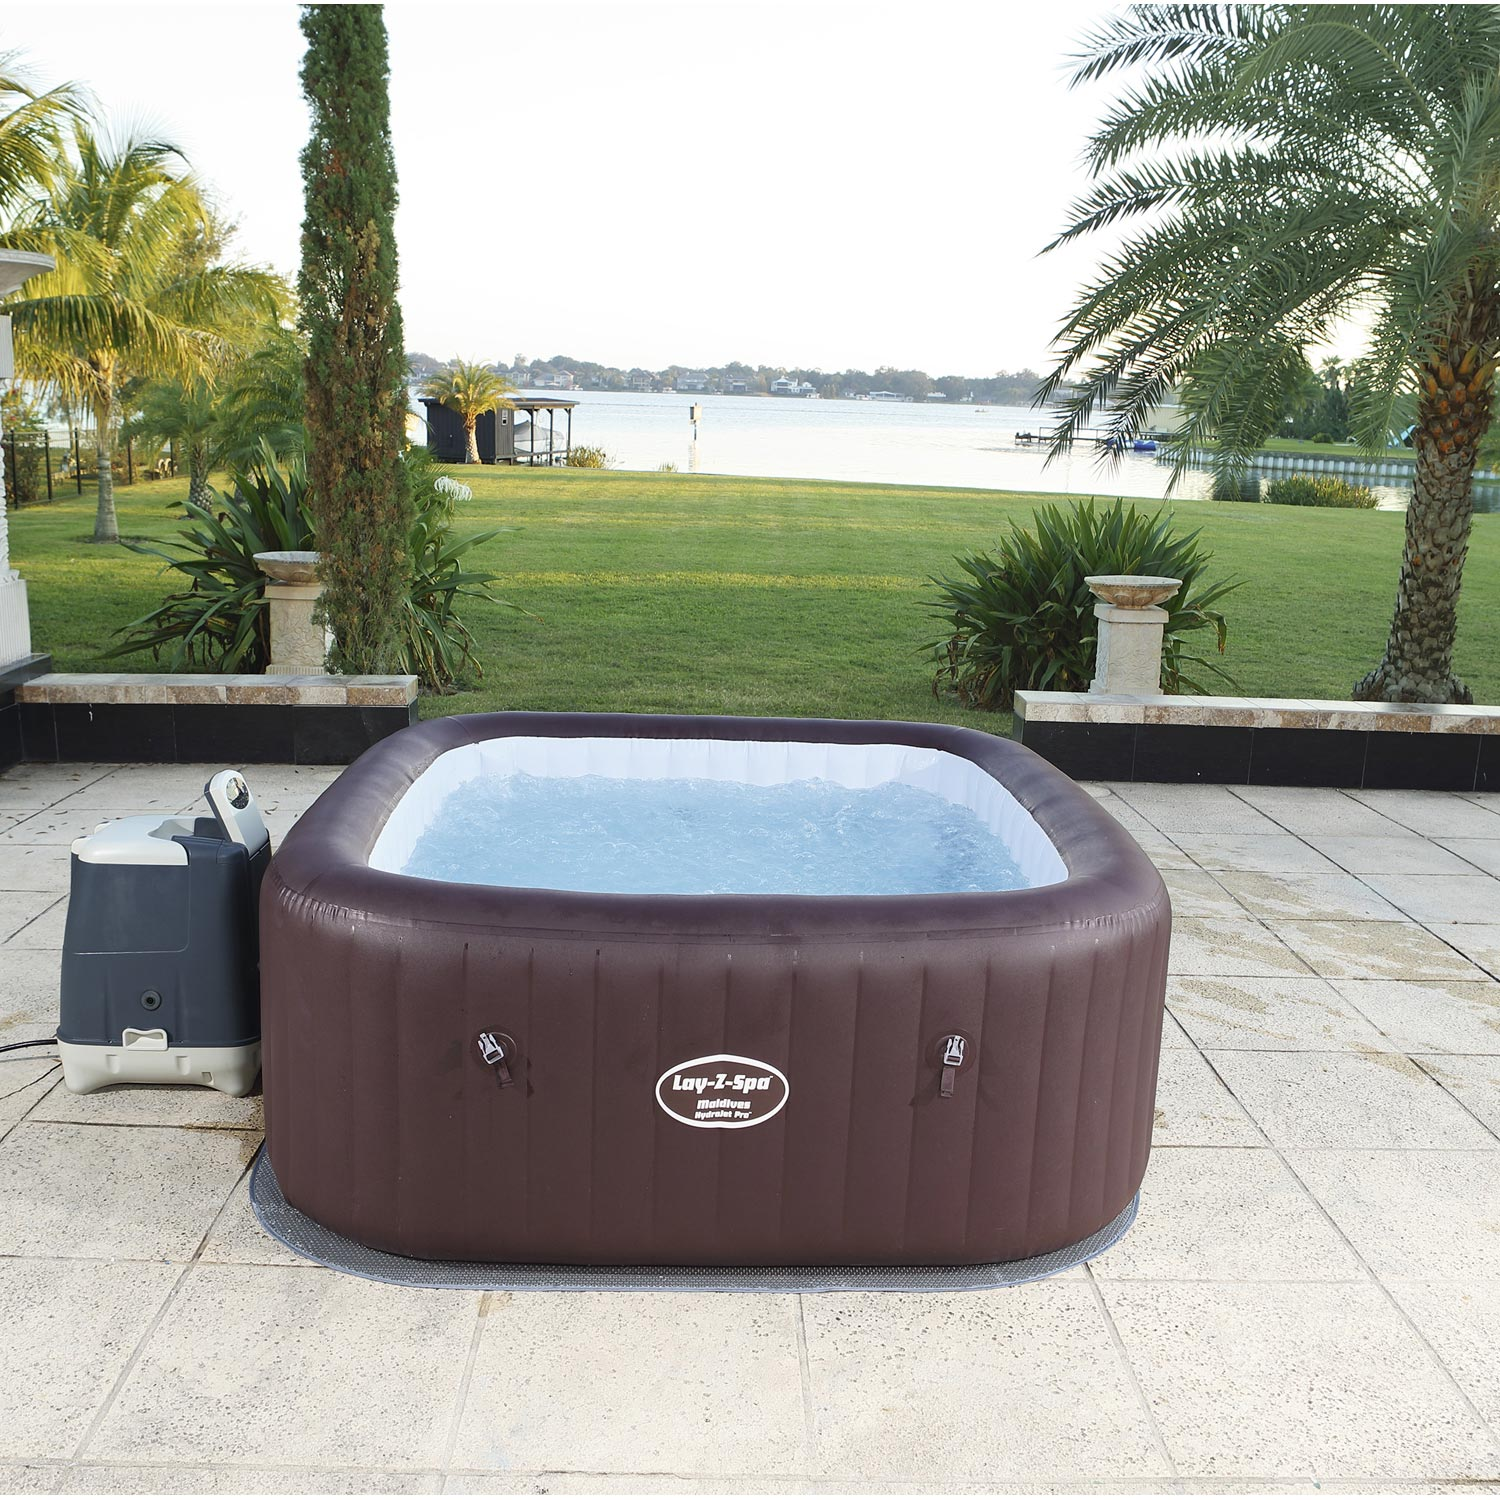 Leroy Merlin Spa Intex spa gonflable bestway lay-z maldives carré | leroy merlin